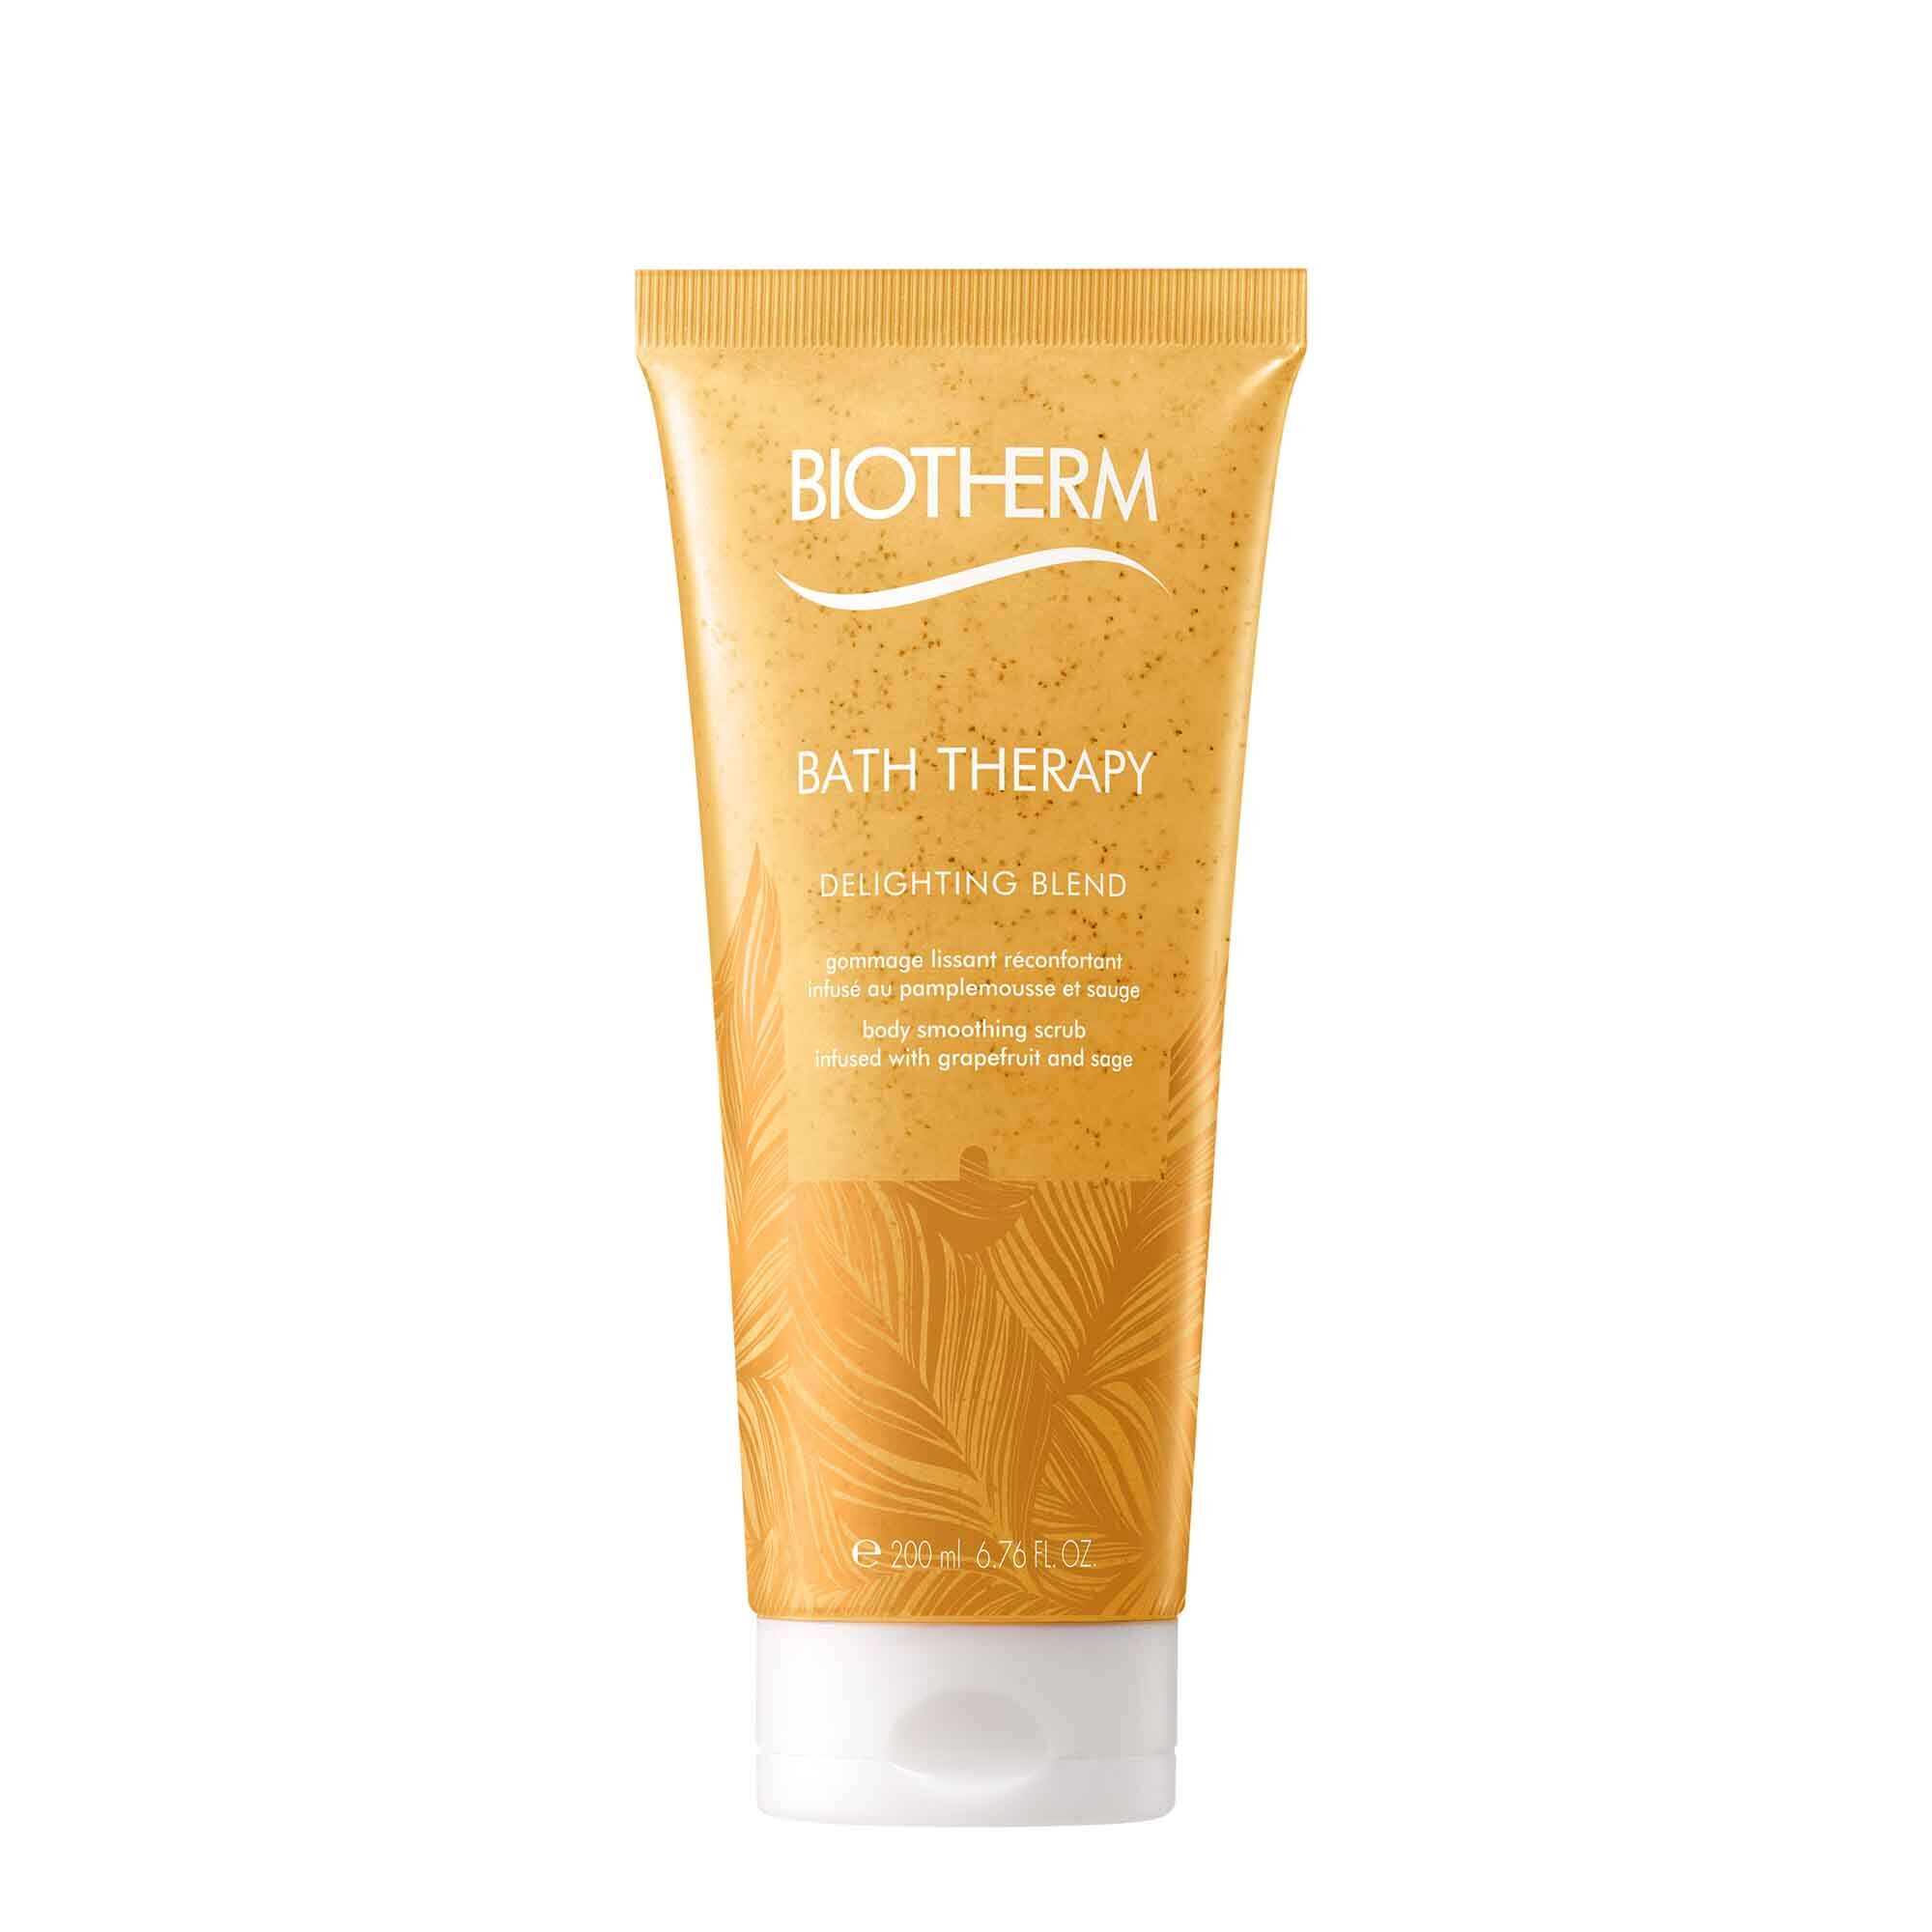 Bath Therapy Delighting Blend Body Smoothing Scrub